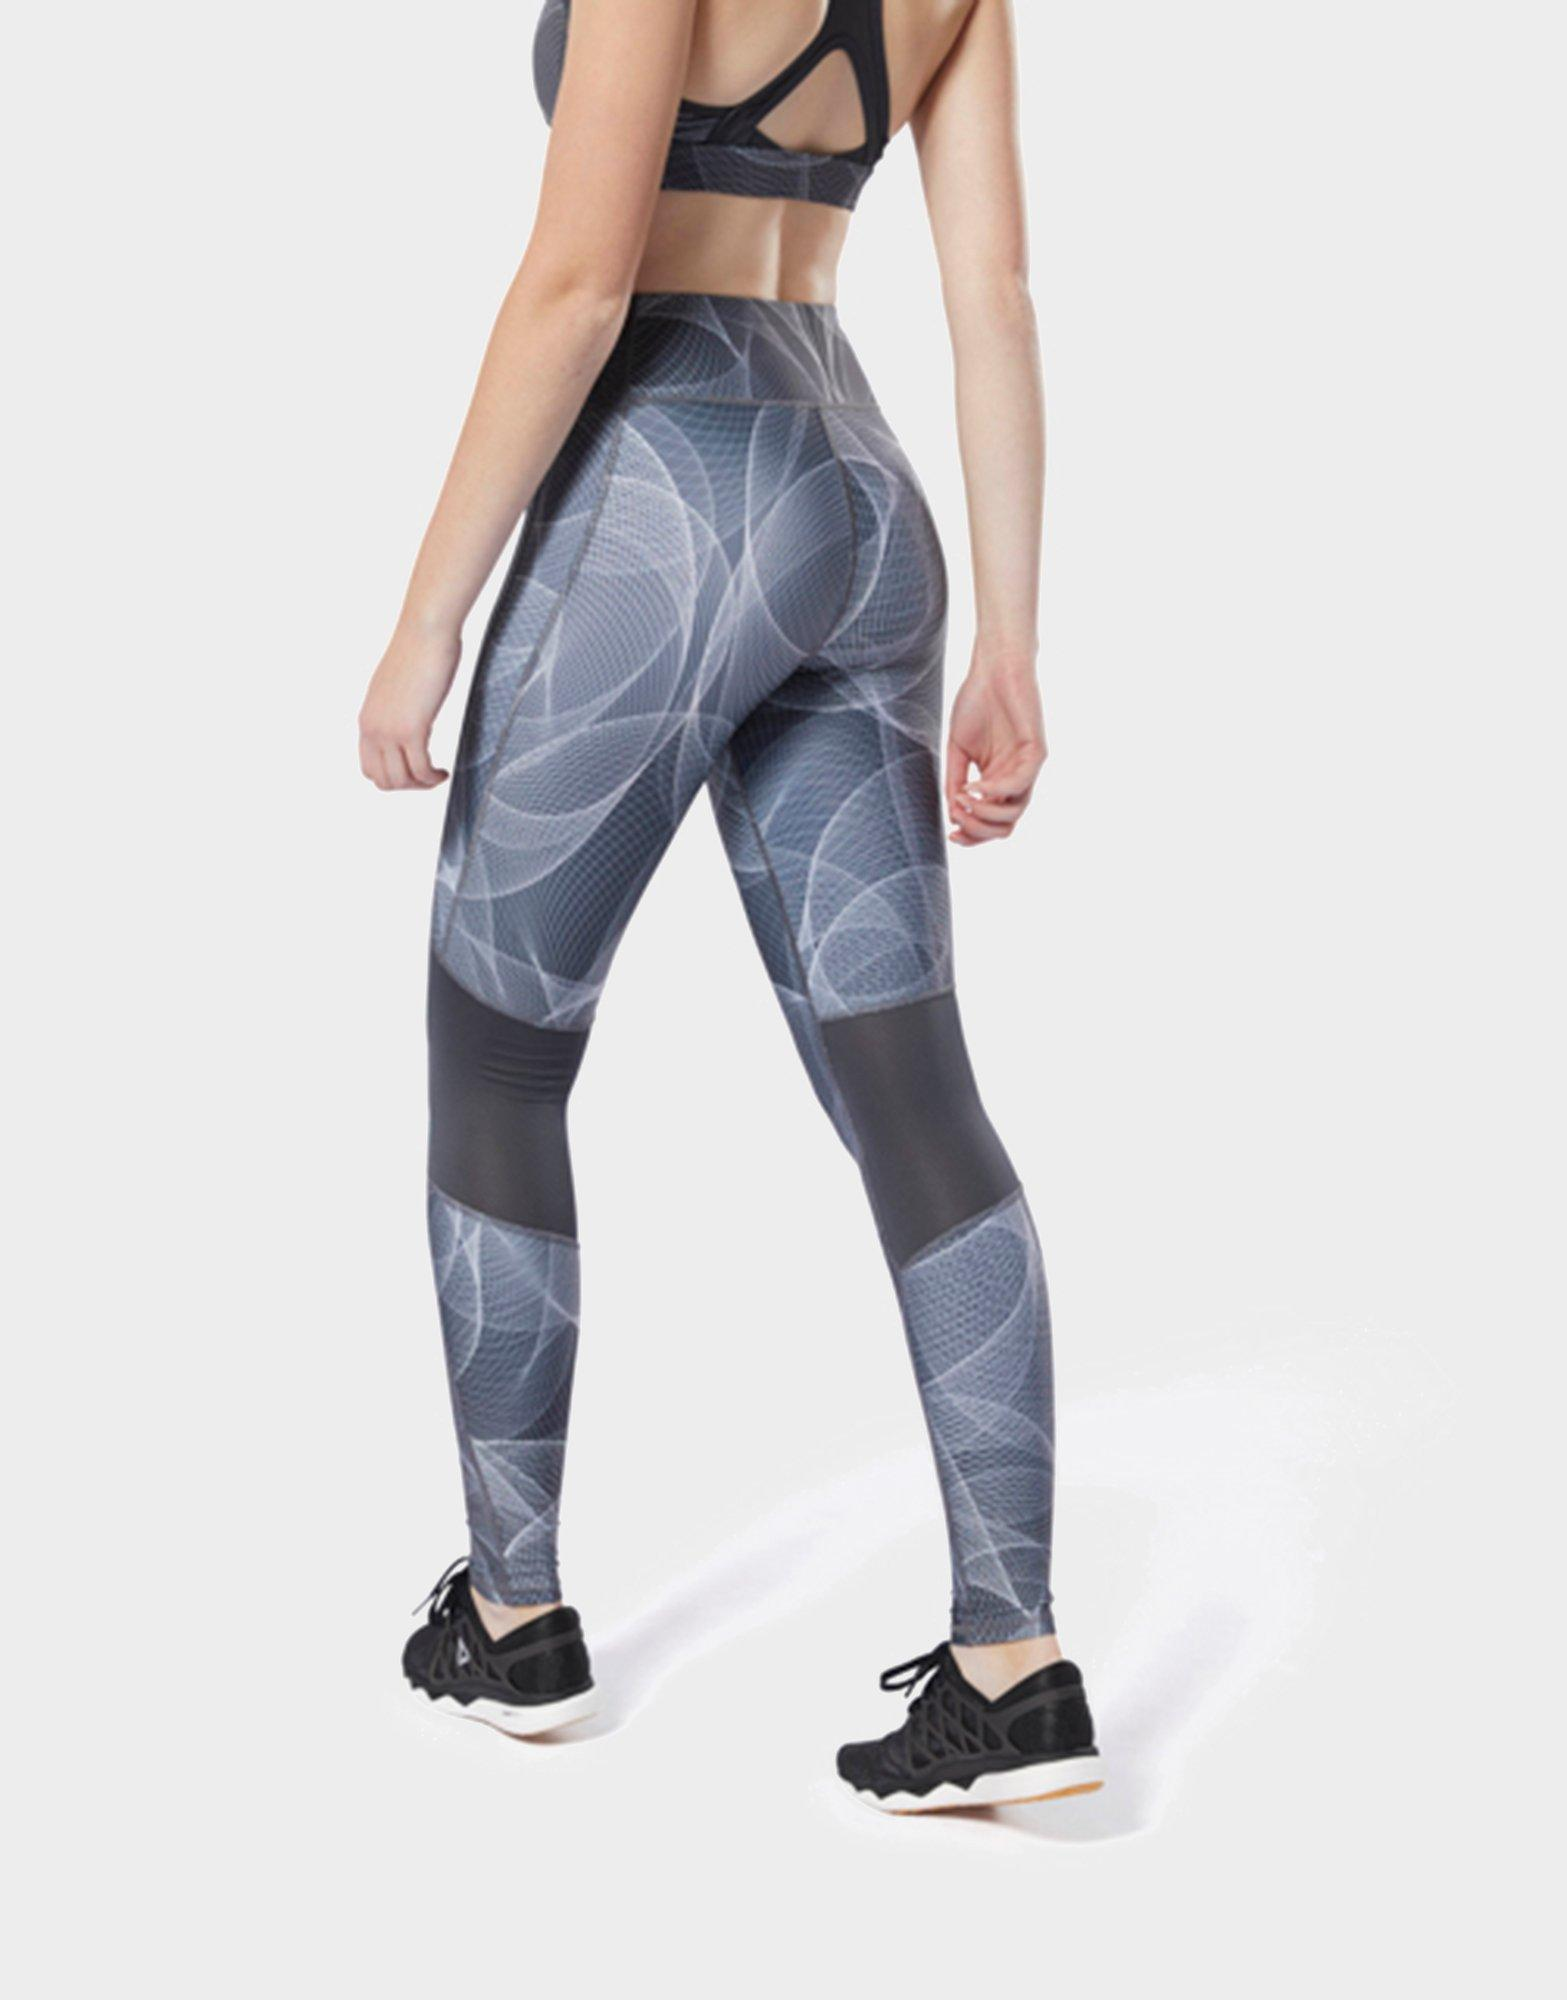 db487b436bc Lyst - Reebok Abstract Print Cropped Running Tights in Gray